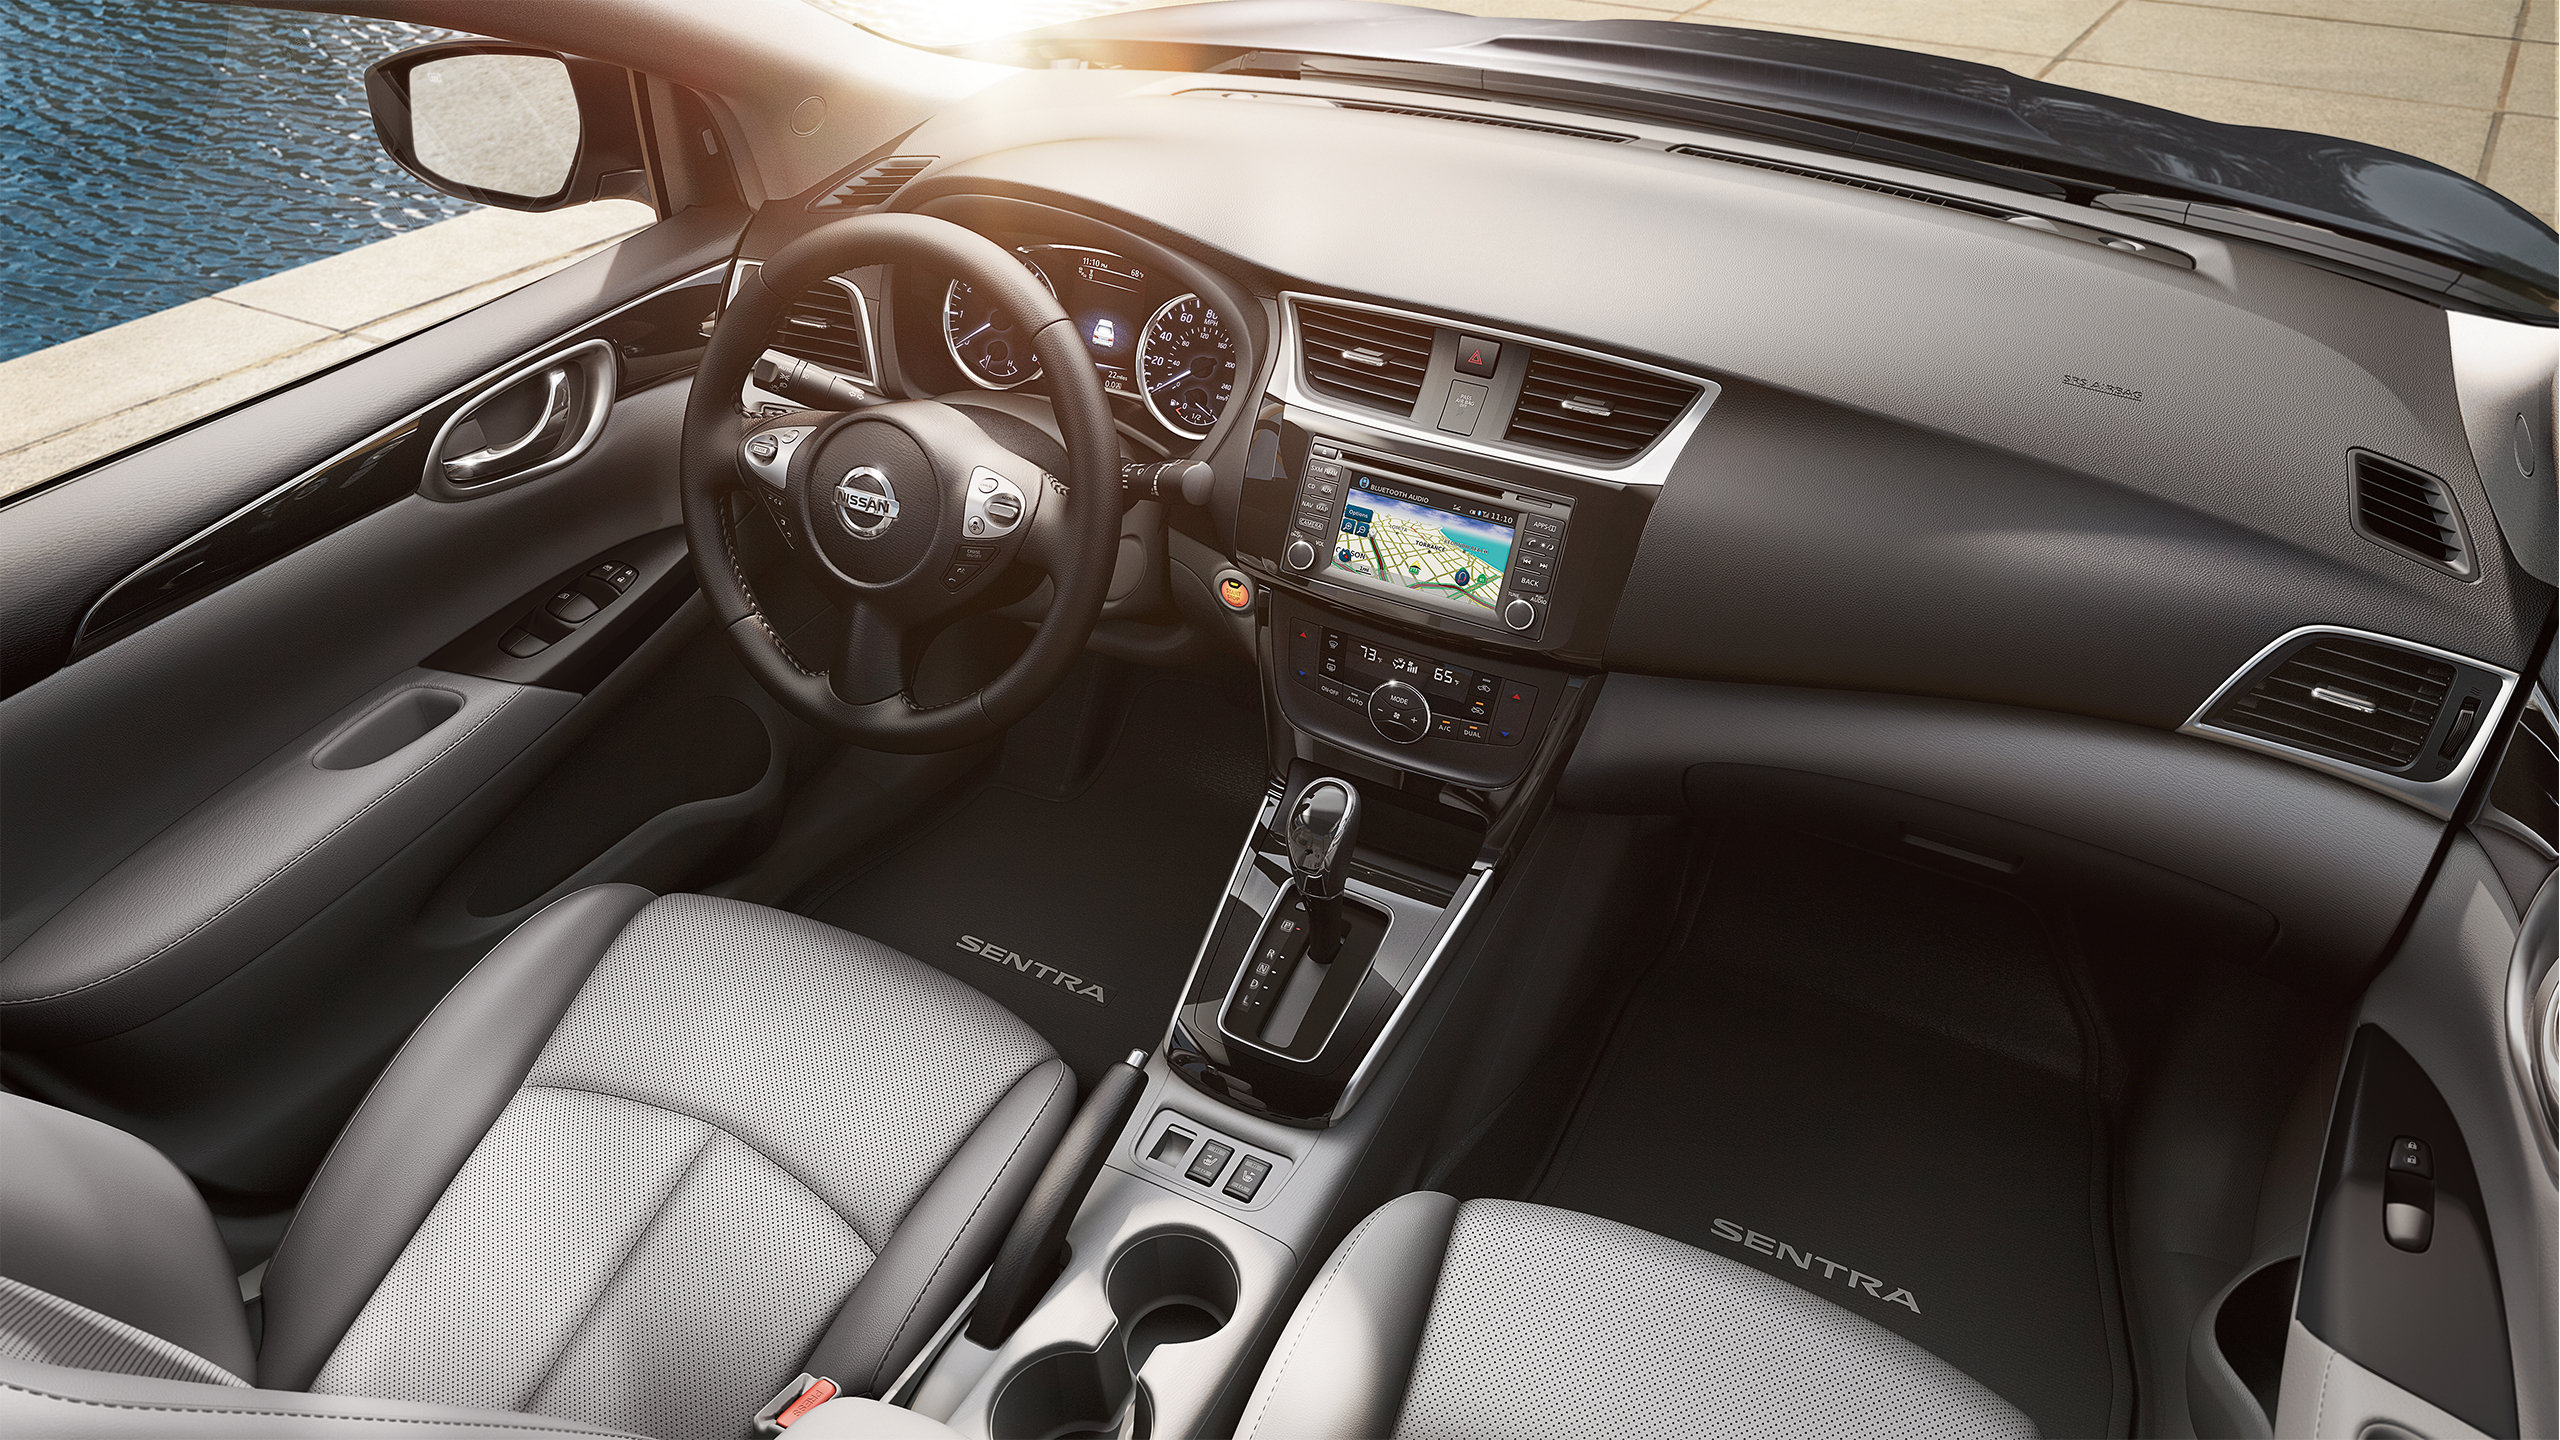 2016 Nissan Sentra Interior Full View